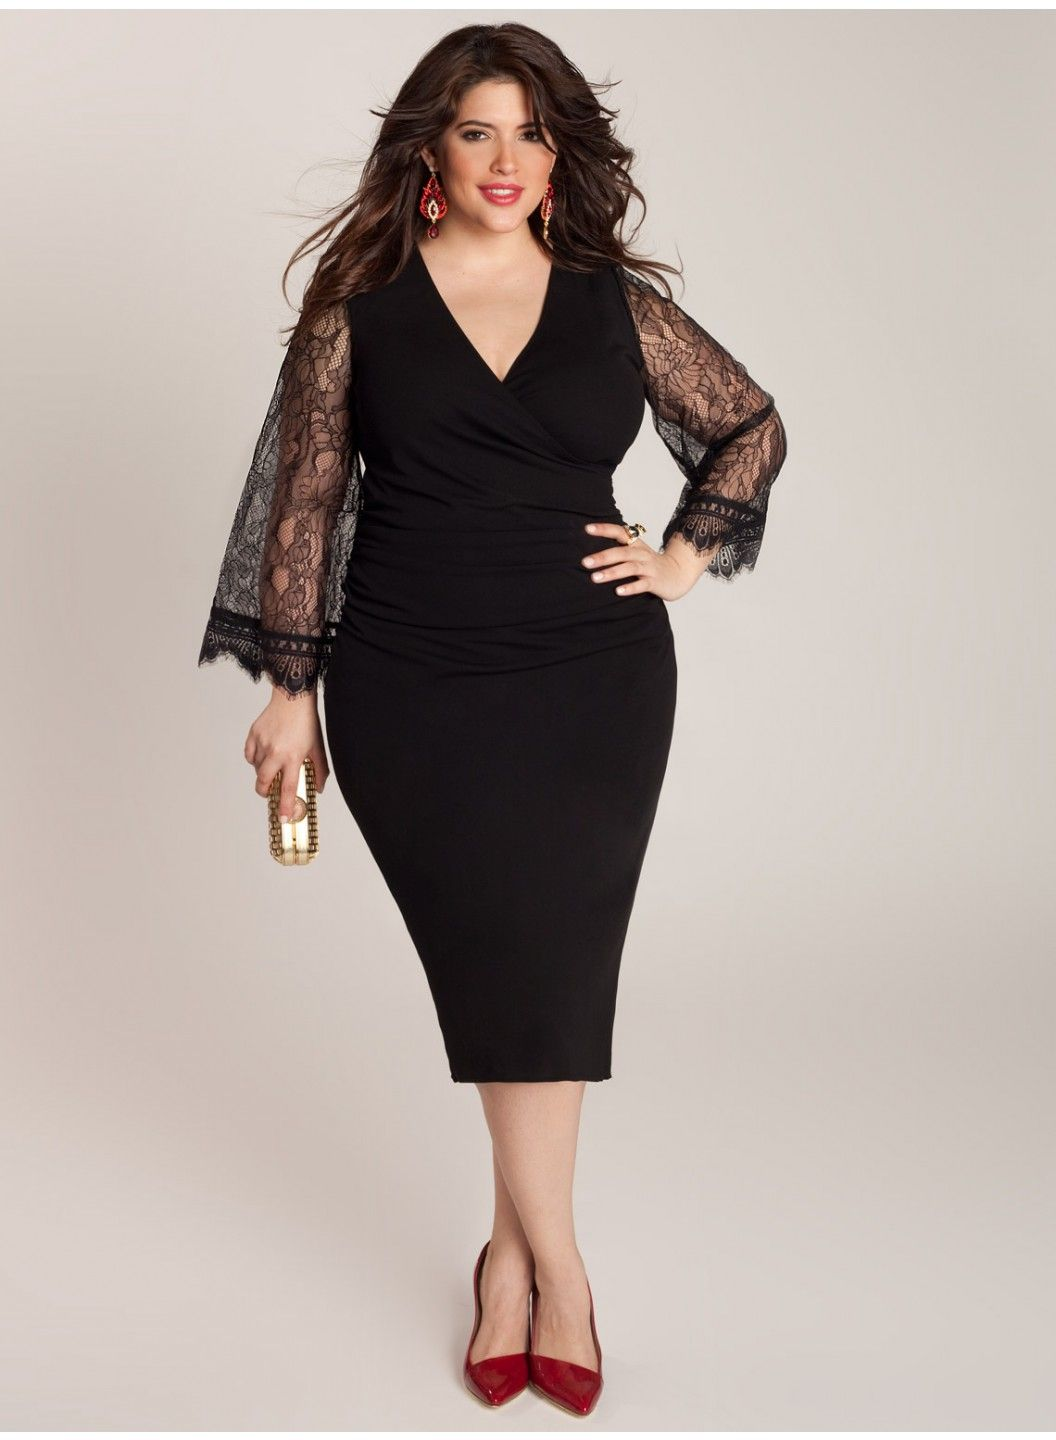 bf9071ee1 Paola Dress Who needs red for Valentine's Day when there is this hot little  black number on the block:)